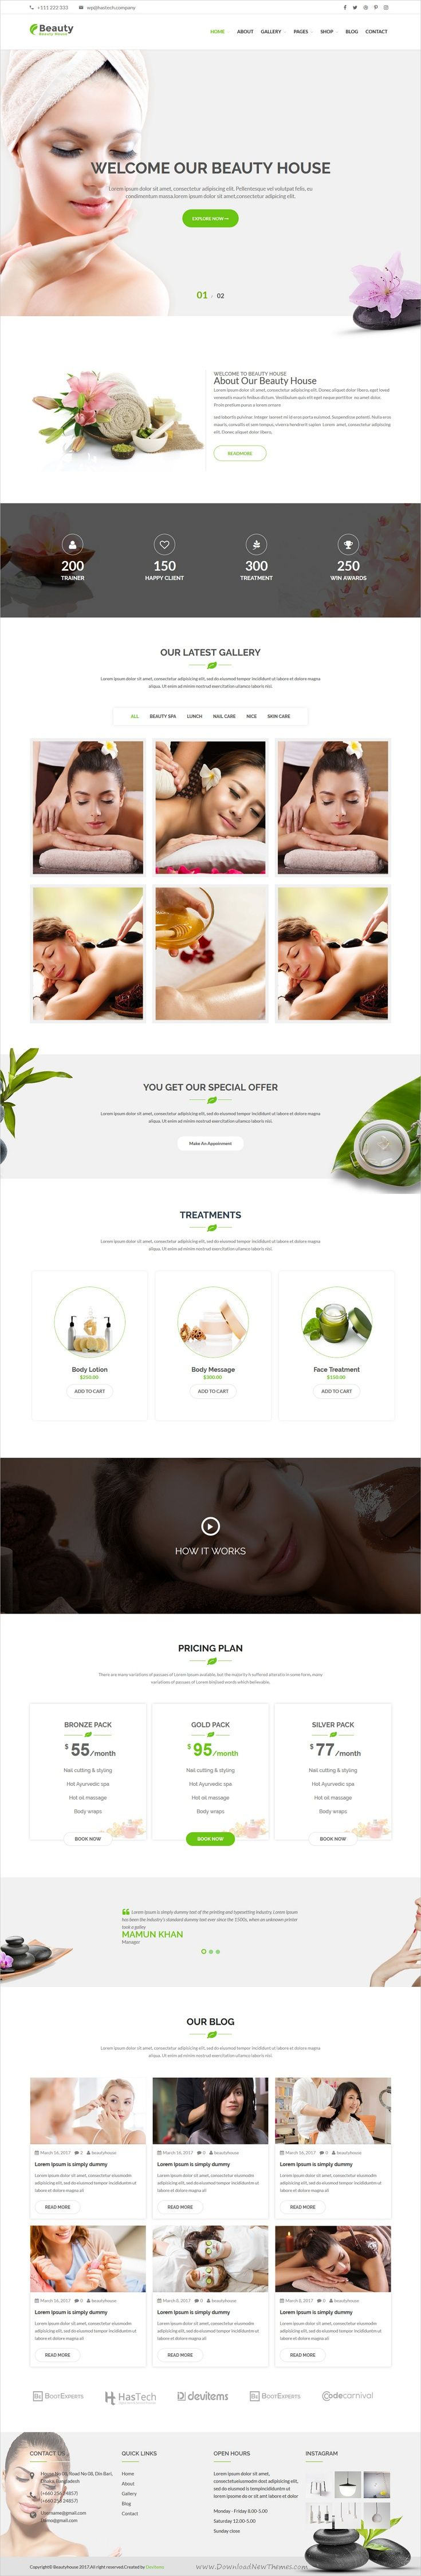 Beauty house is clean and modern design responsive #WordPress theme for beauty #spa, health and #wellness centers website download now ➩ https://themeforest.net/item/beautyhouse-health-beauty-wordpress-theme/19762331?ref=Datasata